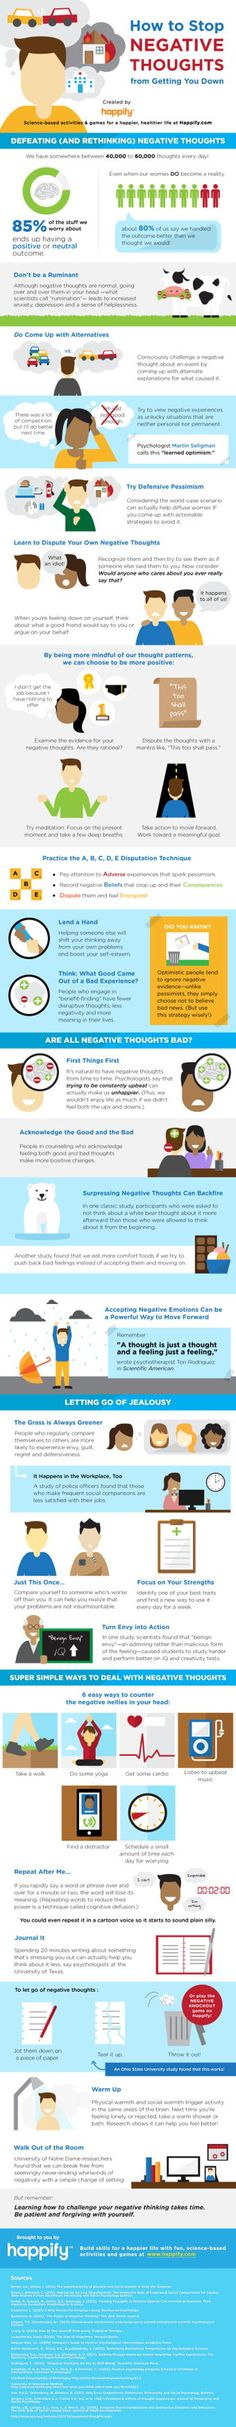 Happy thought people!! How to get ride of negative thoughts. Did you know that a person averages from 40k to 60k negative thoughts a day?! Be happy! Think positive!